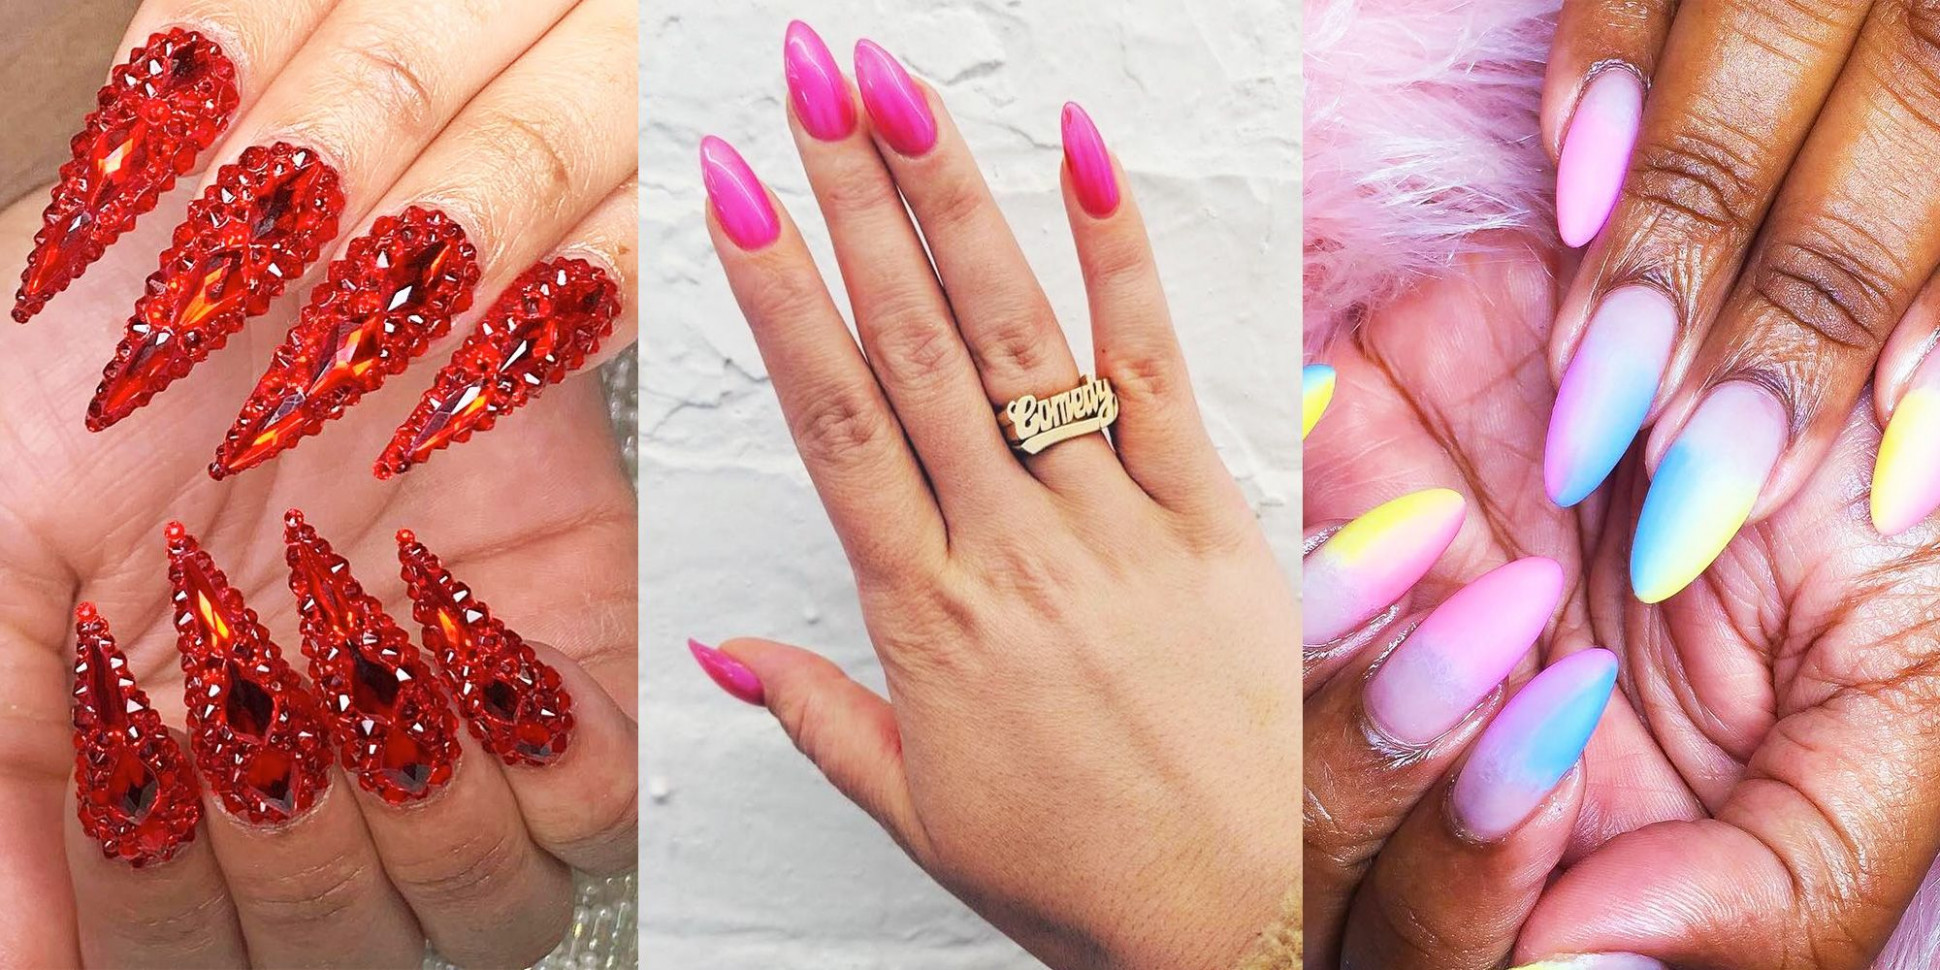 11 Cool Stiletto Nail Designs - Best Long and Short Stiletto Nail